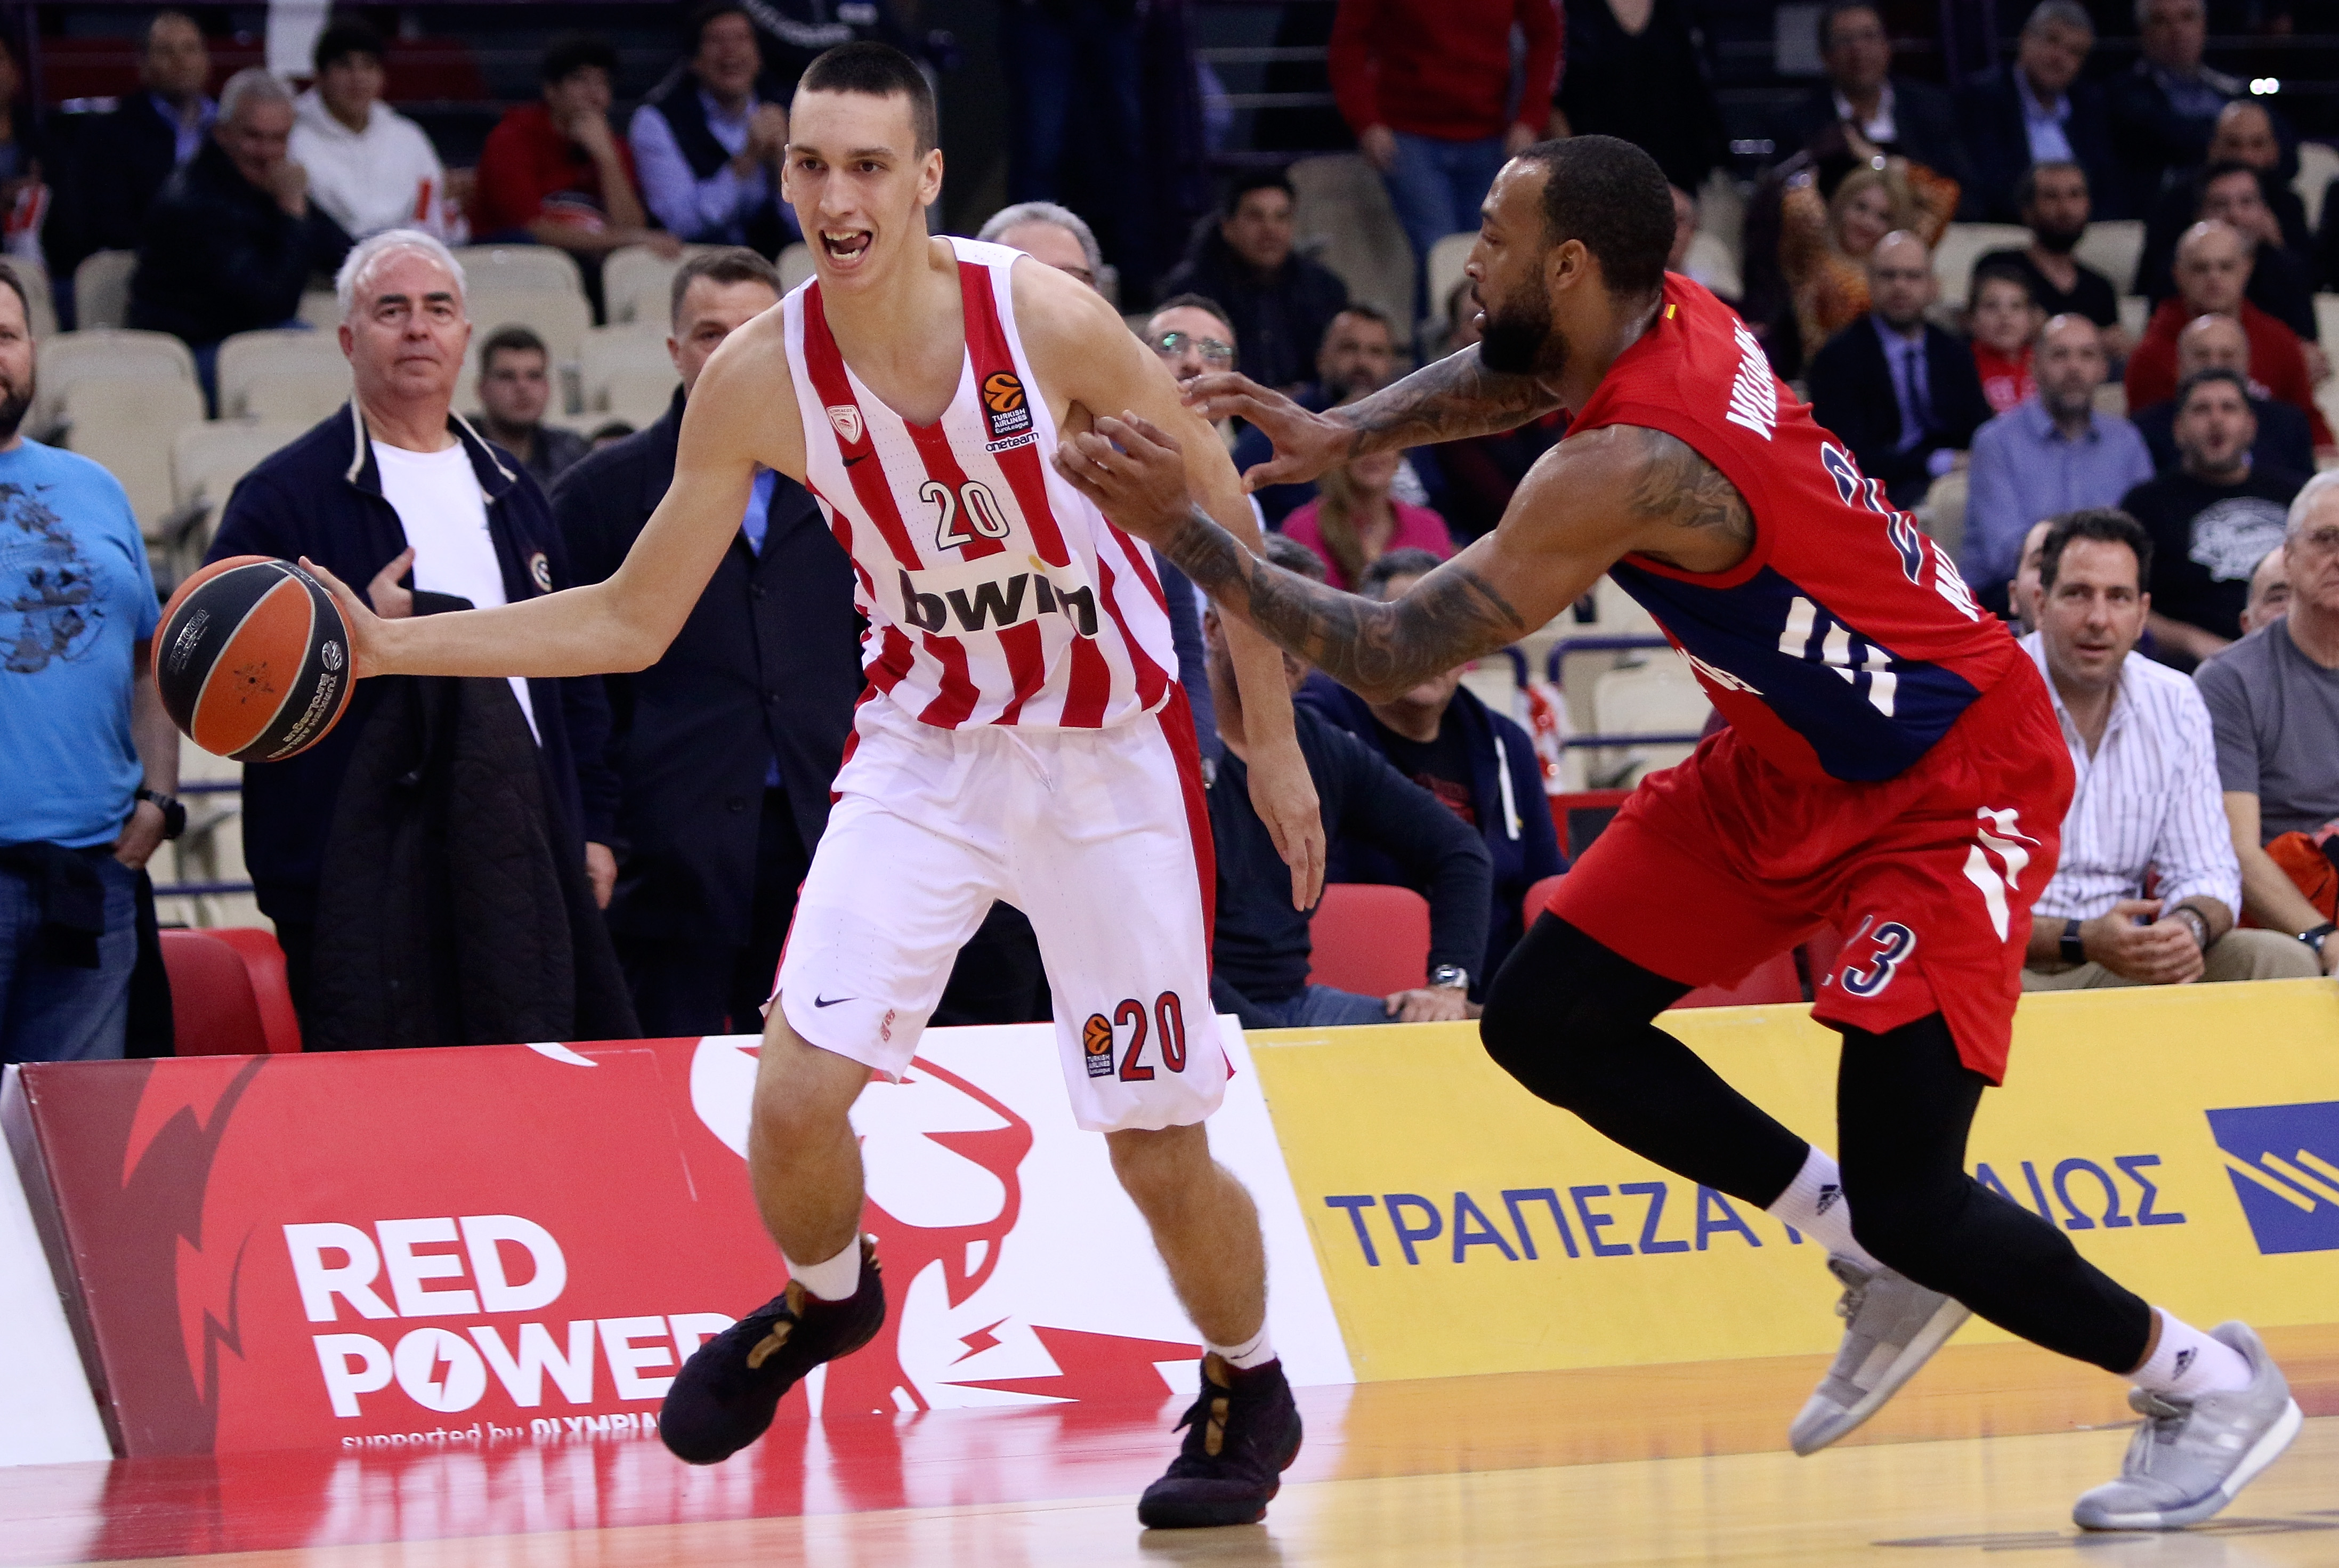 Olympiacos Piraeus v FC Bayern Munich - Turkish Airlines EuroLeague